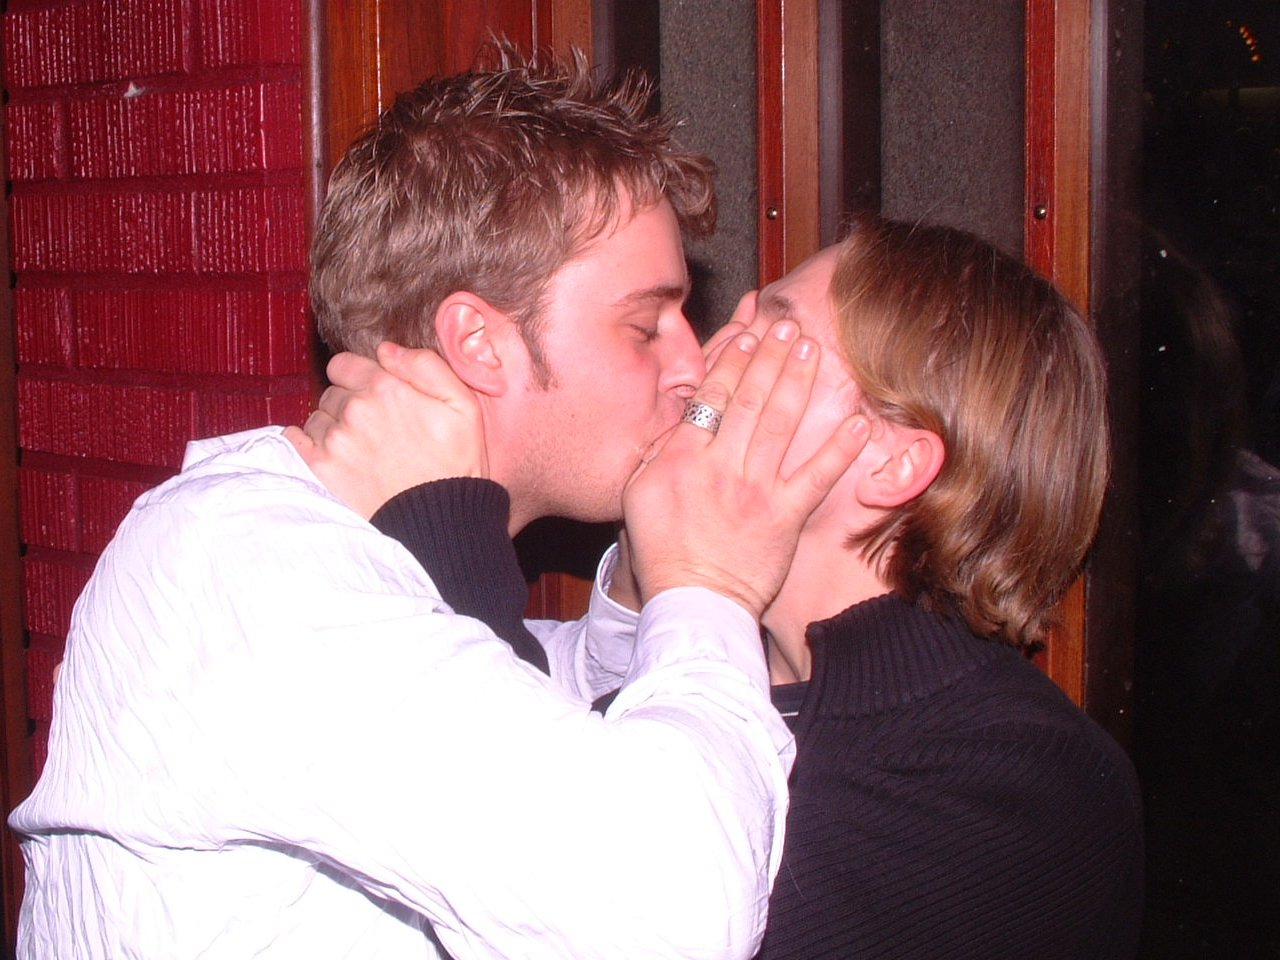 kissing, for example (my favorite past time):